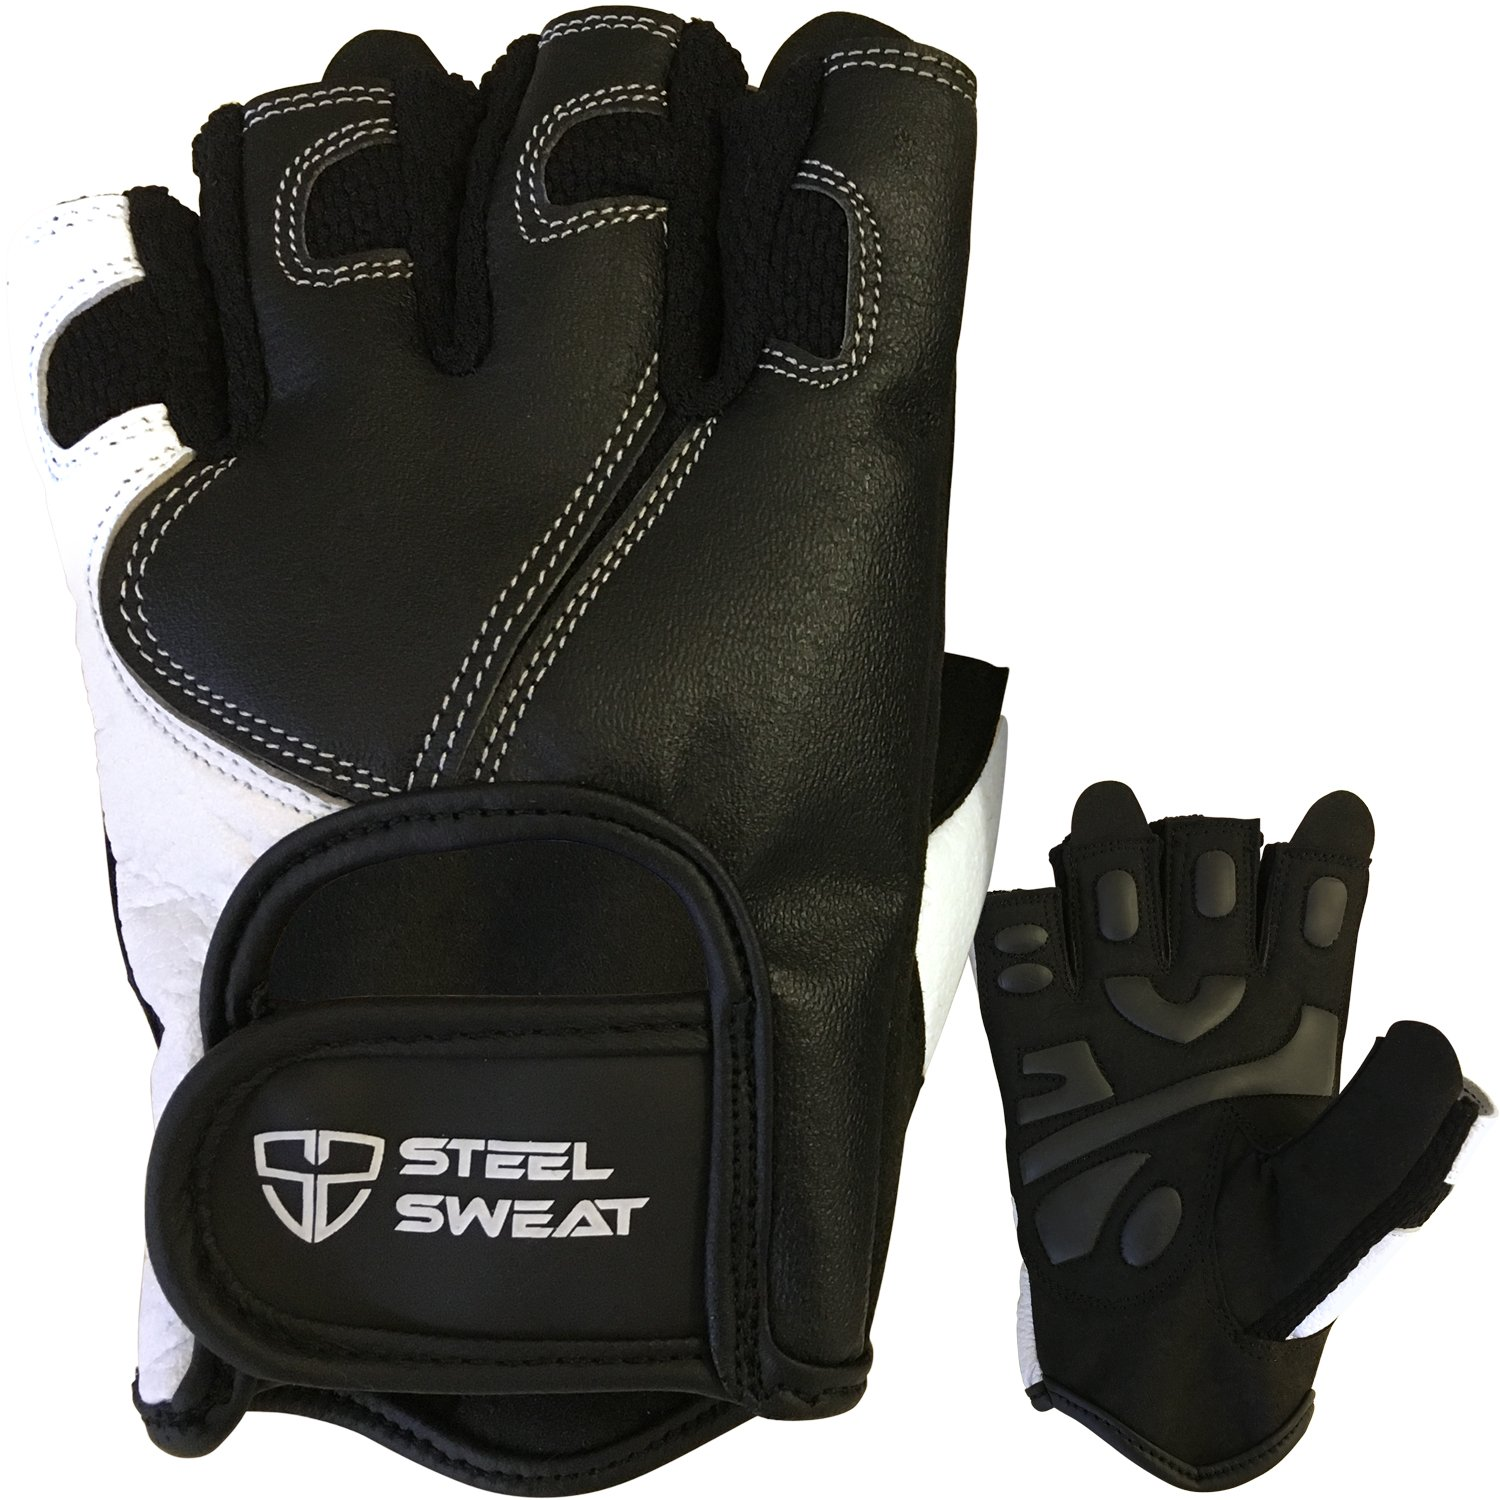 Weight Lifting Gloves Xxl: Best Weight Lifting Gloves For Men And Women